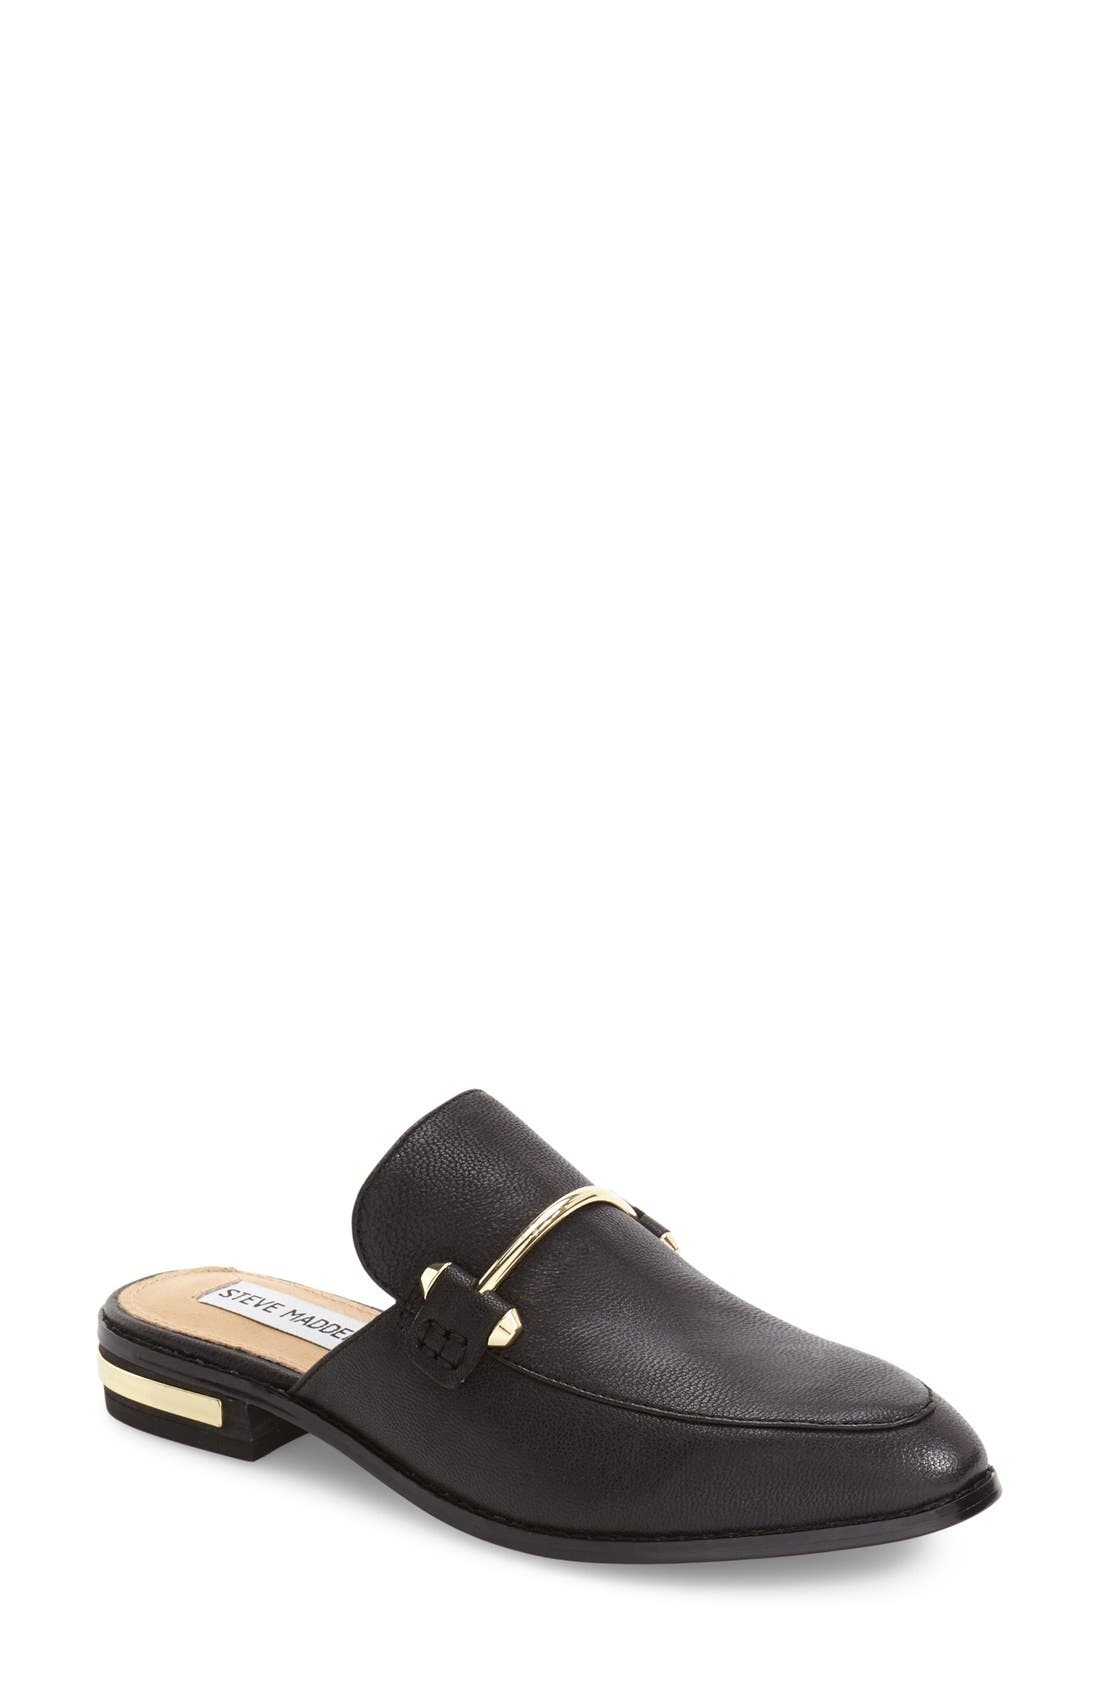 Main Image - Steve Madden Laaura Backless Loafer (Women)